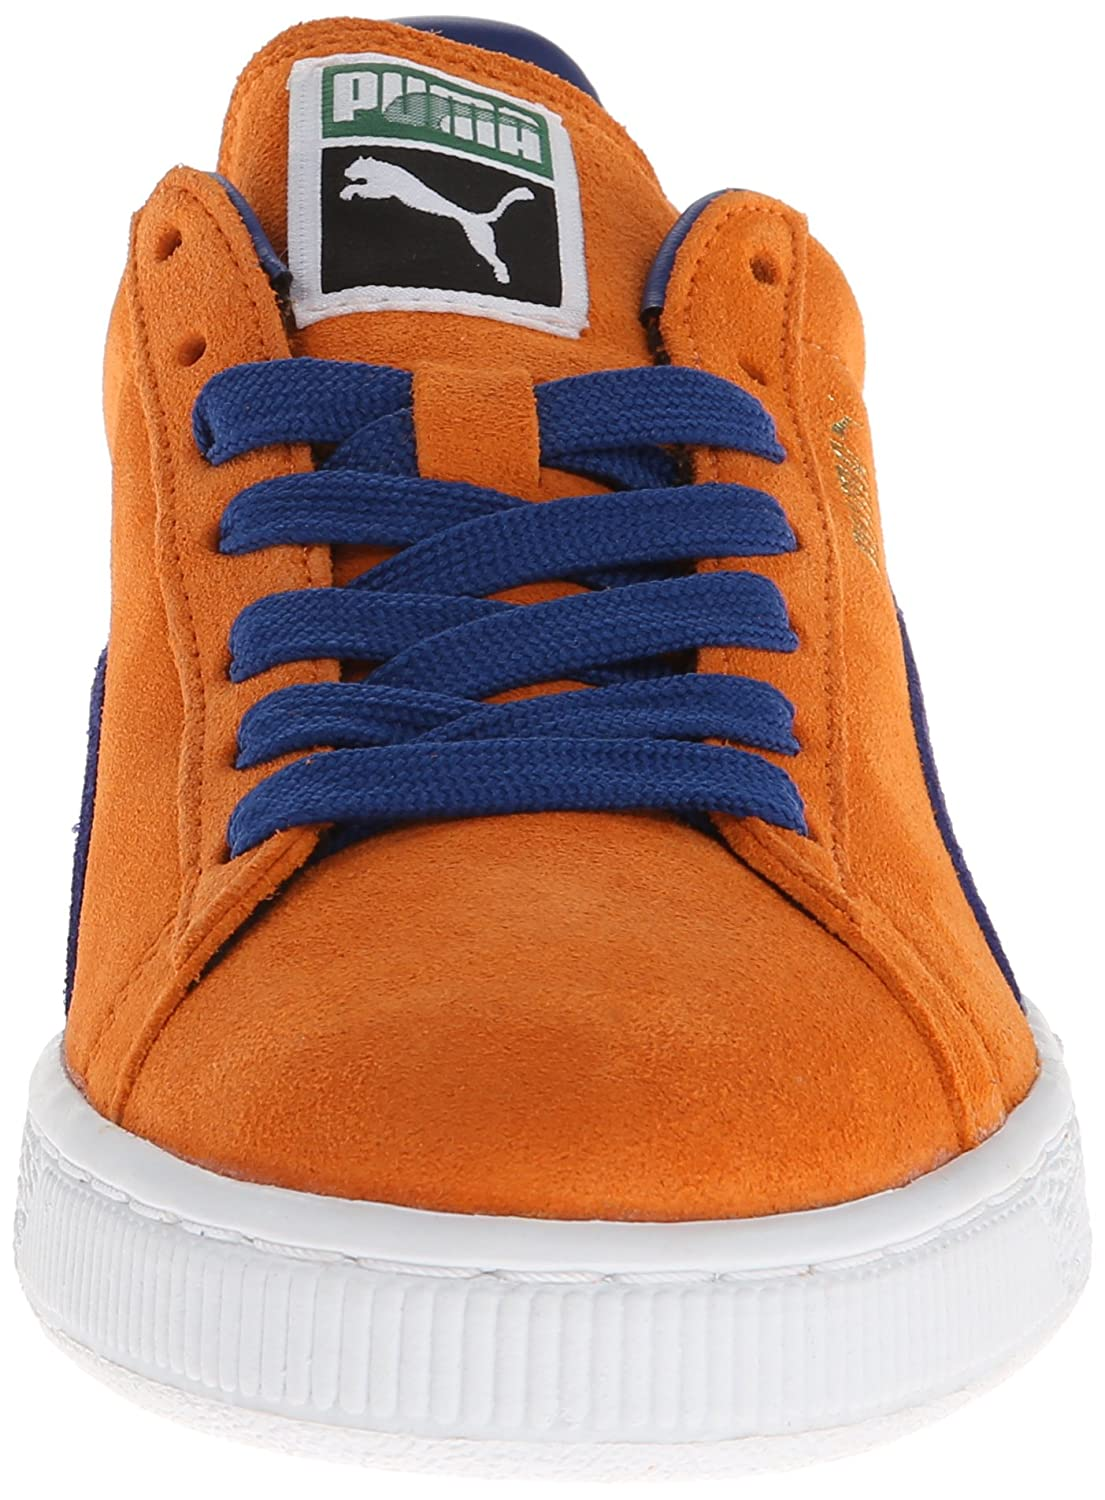 PUMA Adult Suede Classic Shoe B00GV4HDAY 10 M US|Russet Orange/Limoges